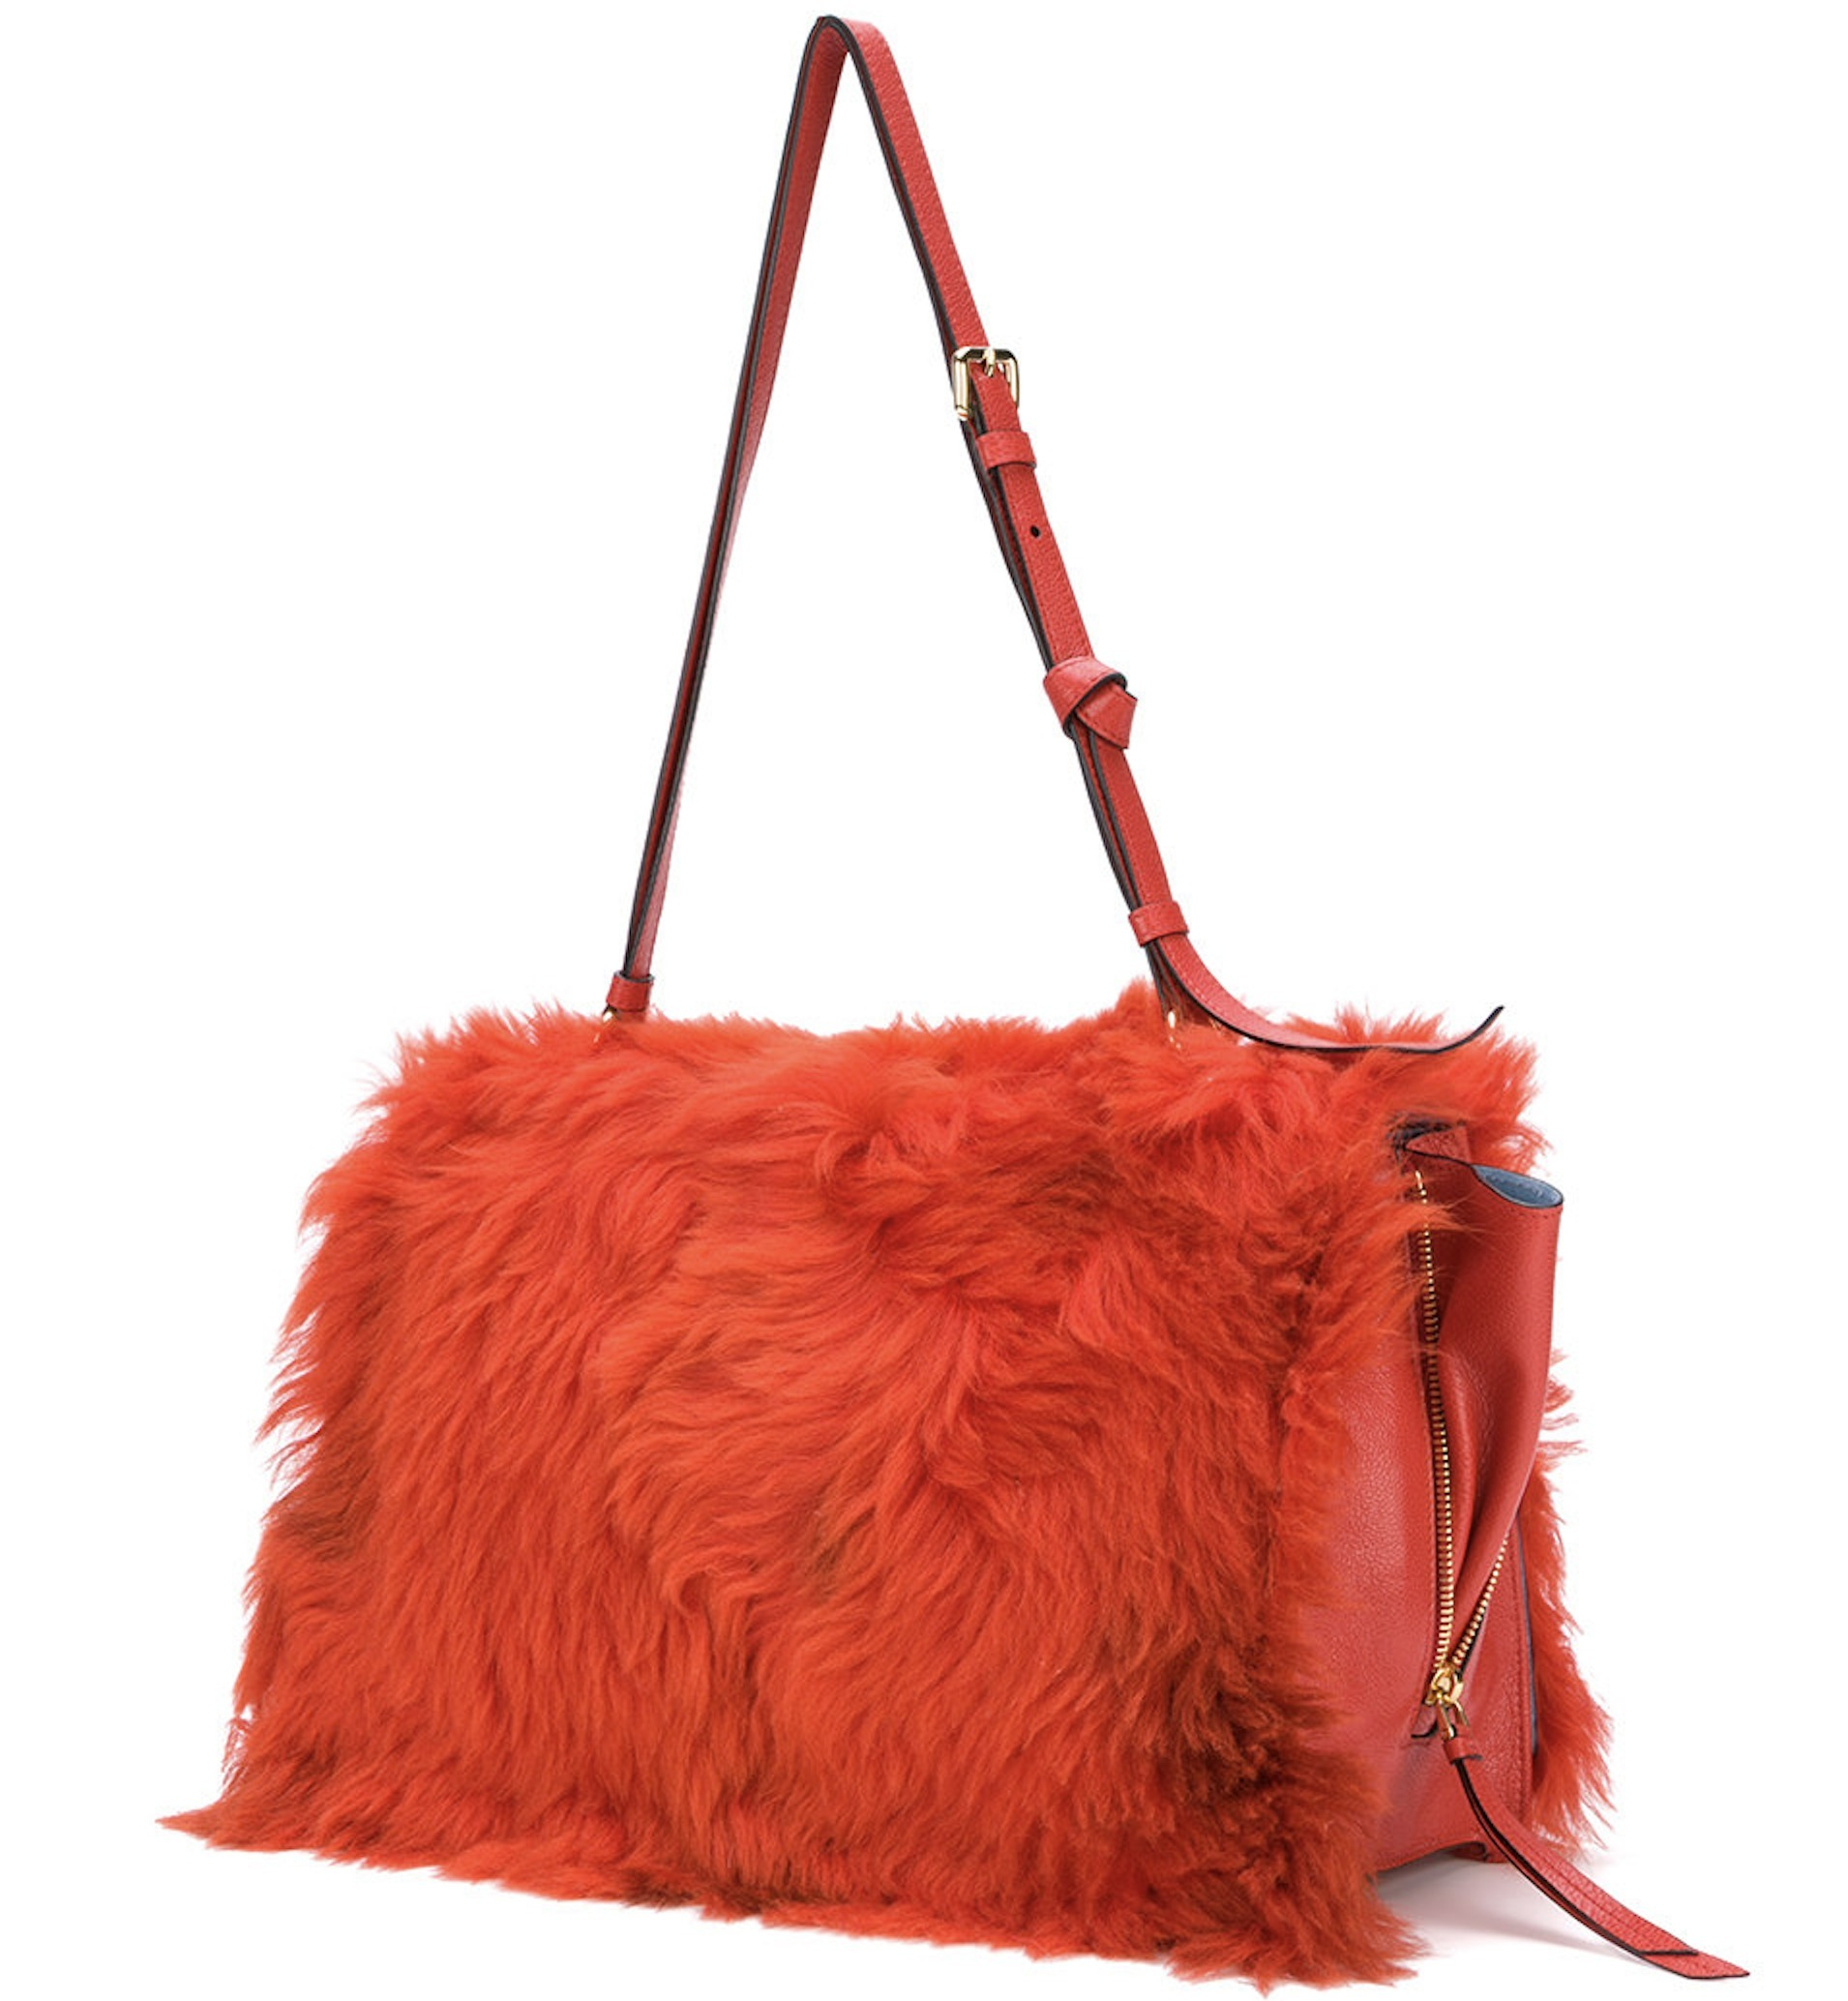 PR812 LOOK25 FUR & LEATHER ETIQUETTE SHOULDER BAG